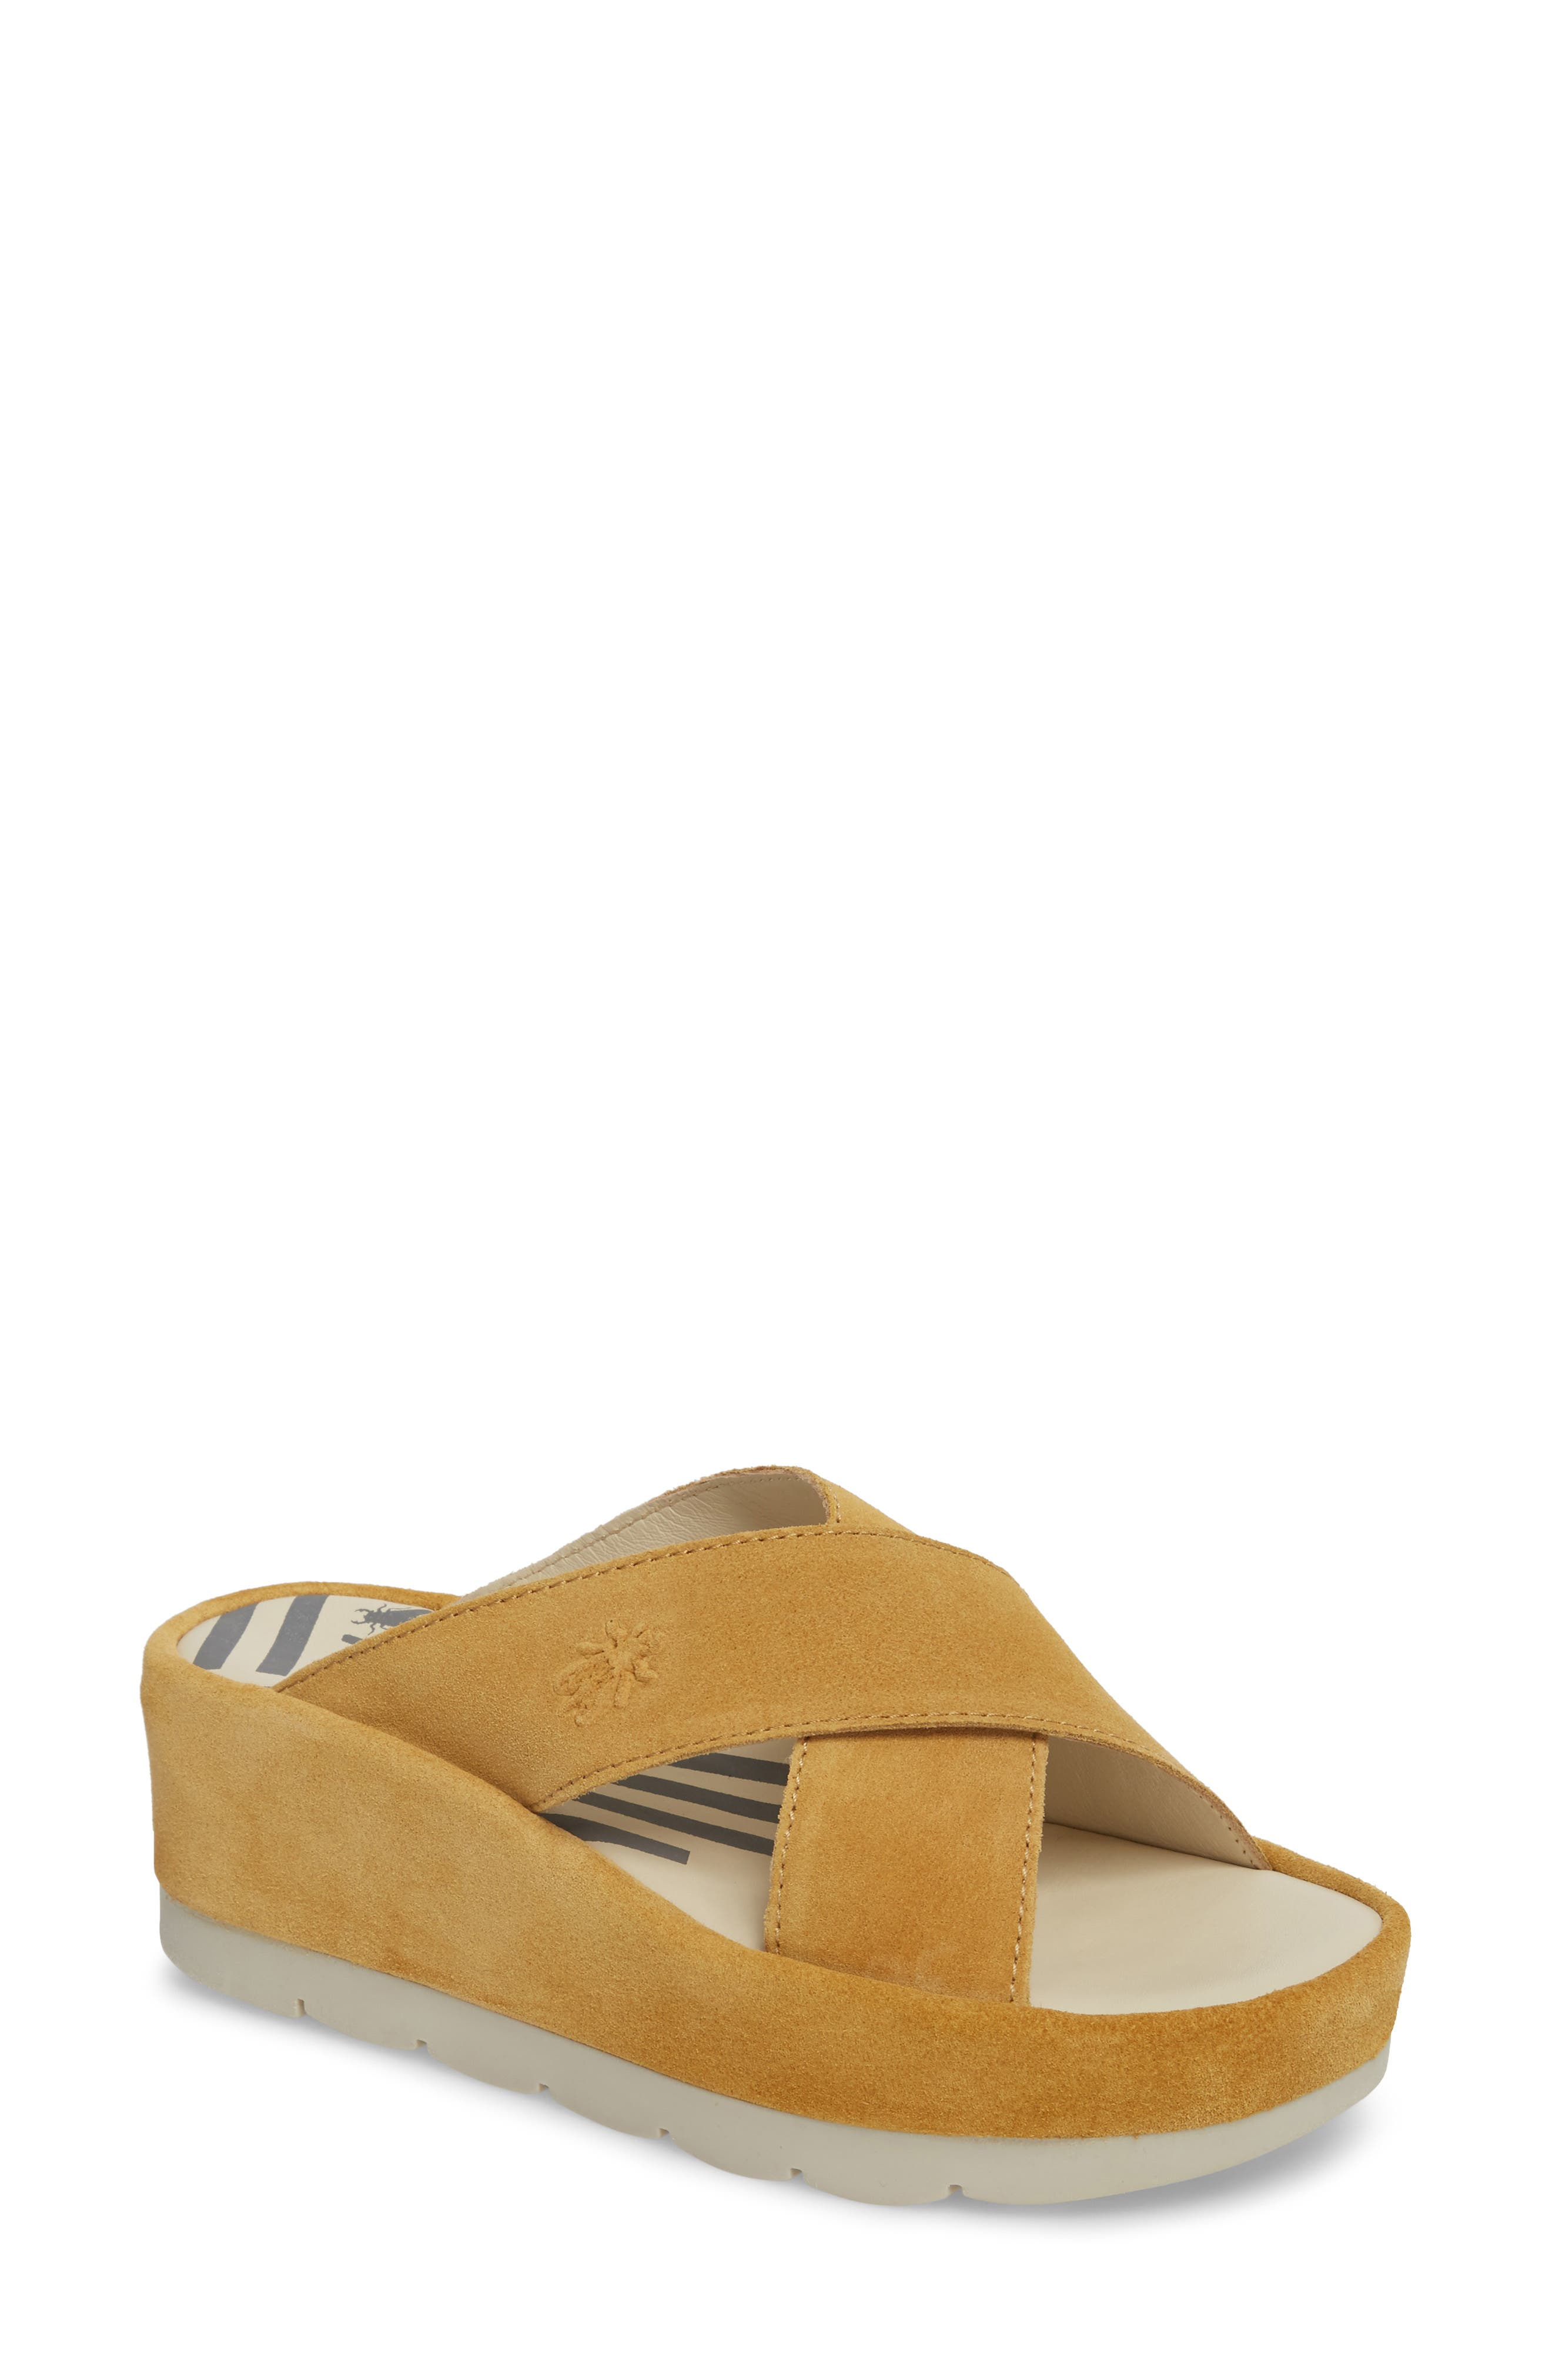 Fly London Begs Platform Slide Sandal, Yellow